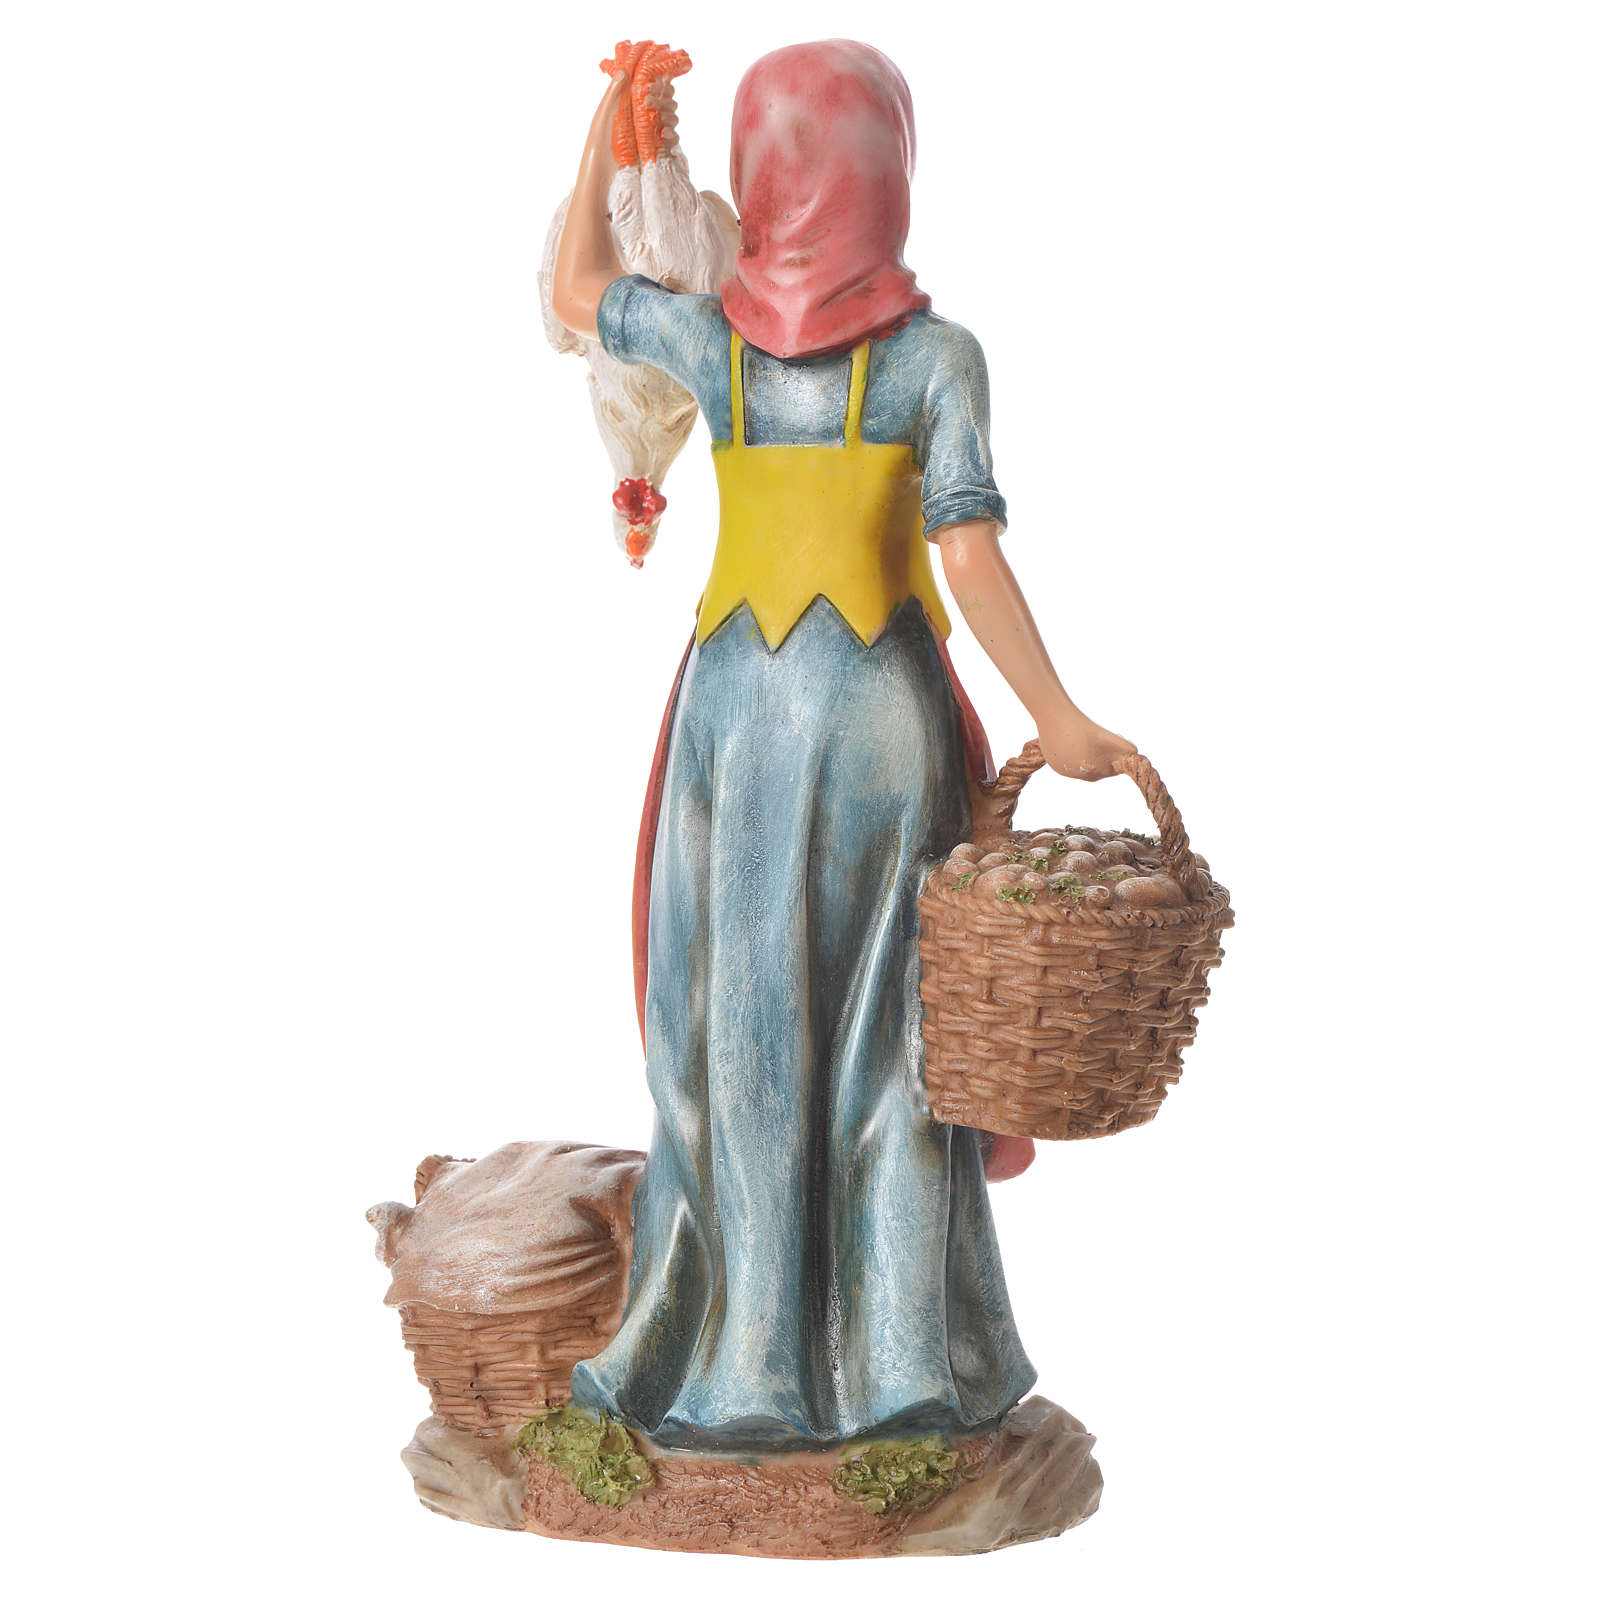 Nativity figurine, woman with hens and basket, 30cm resin 3